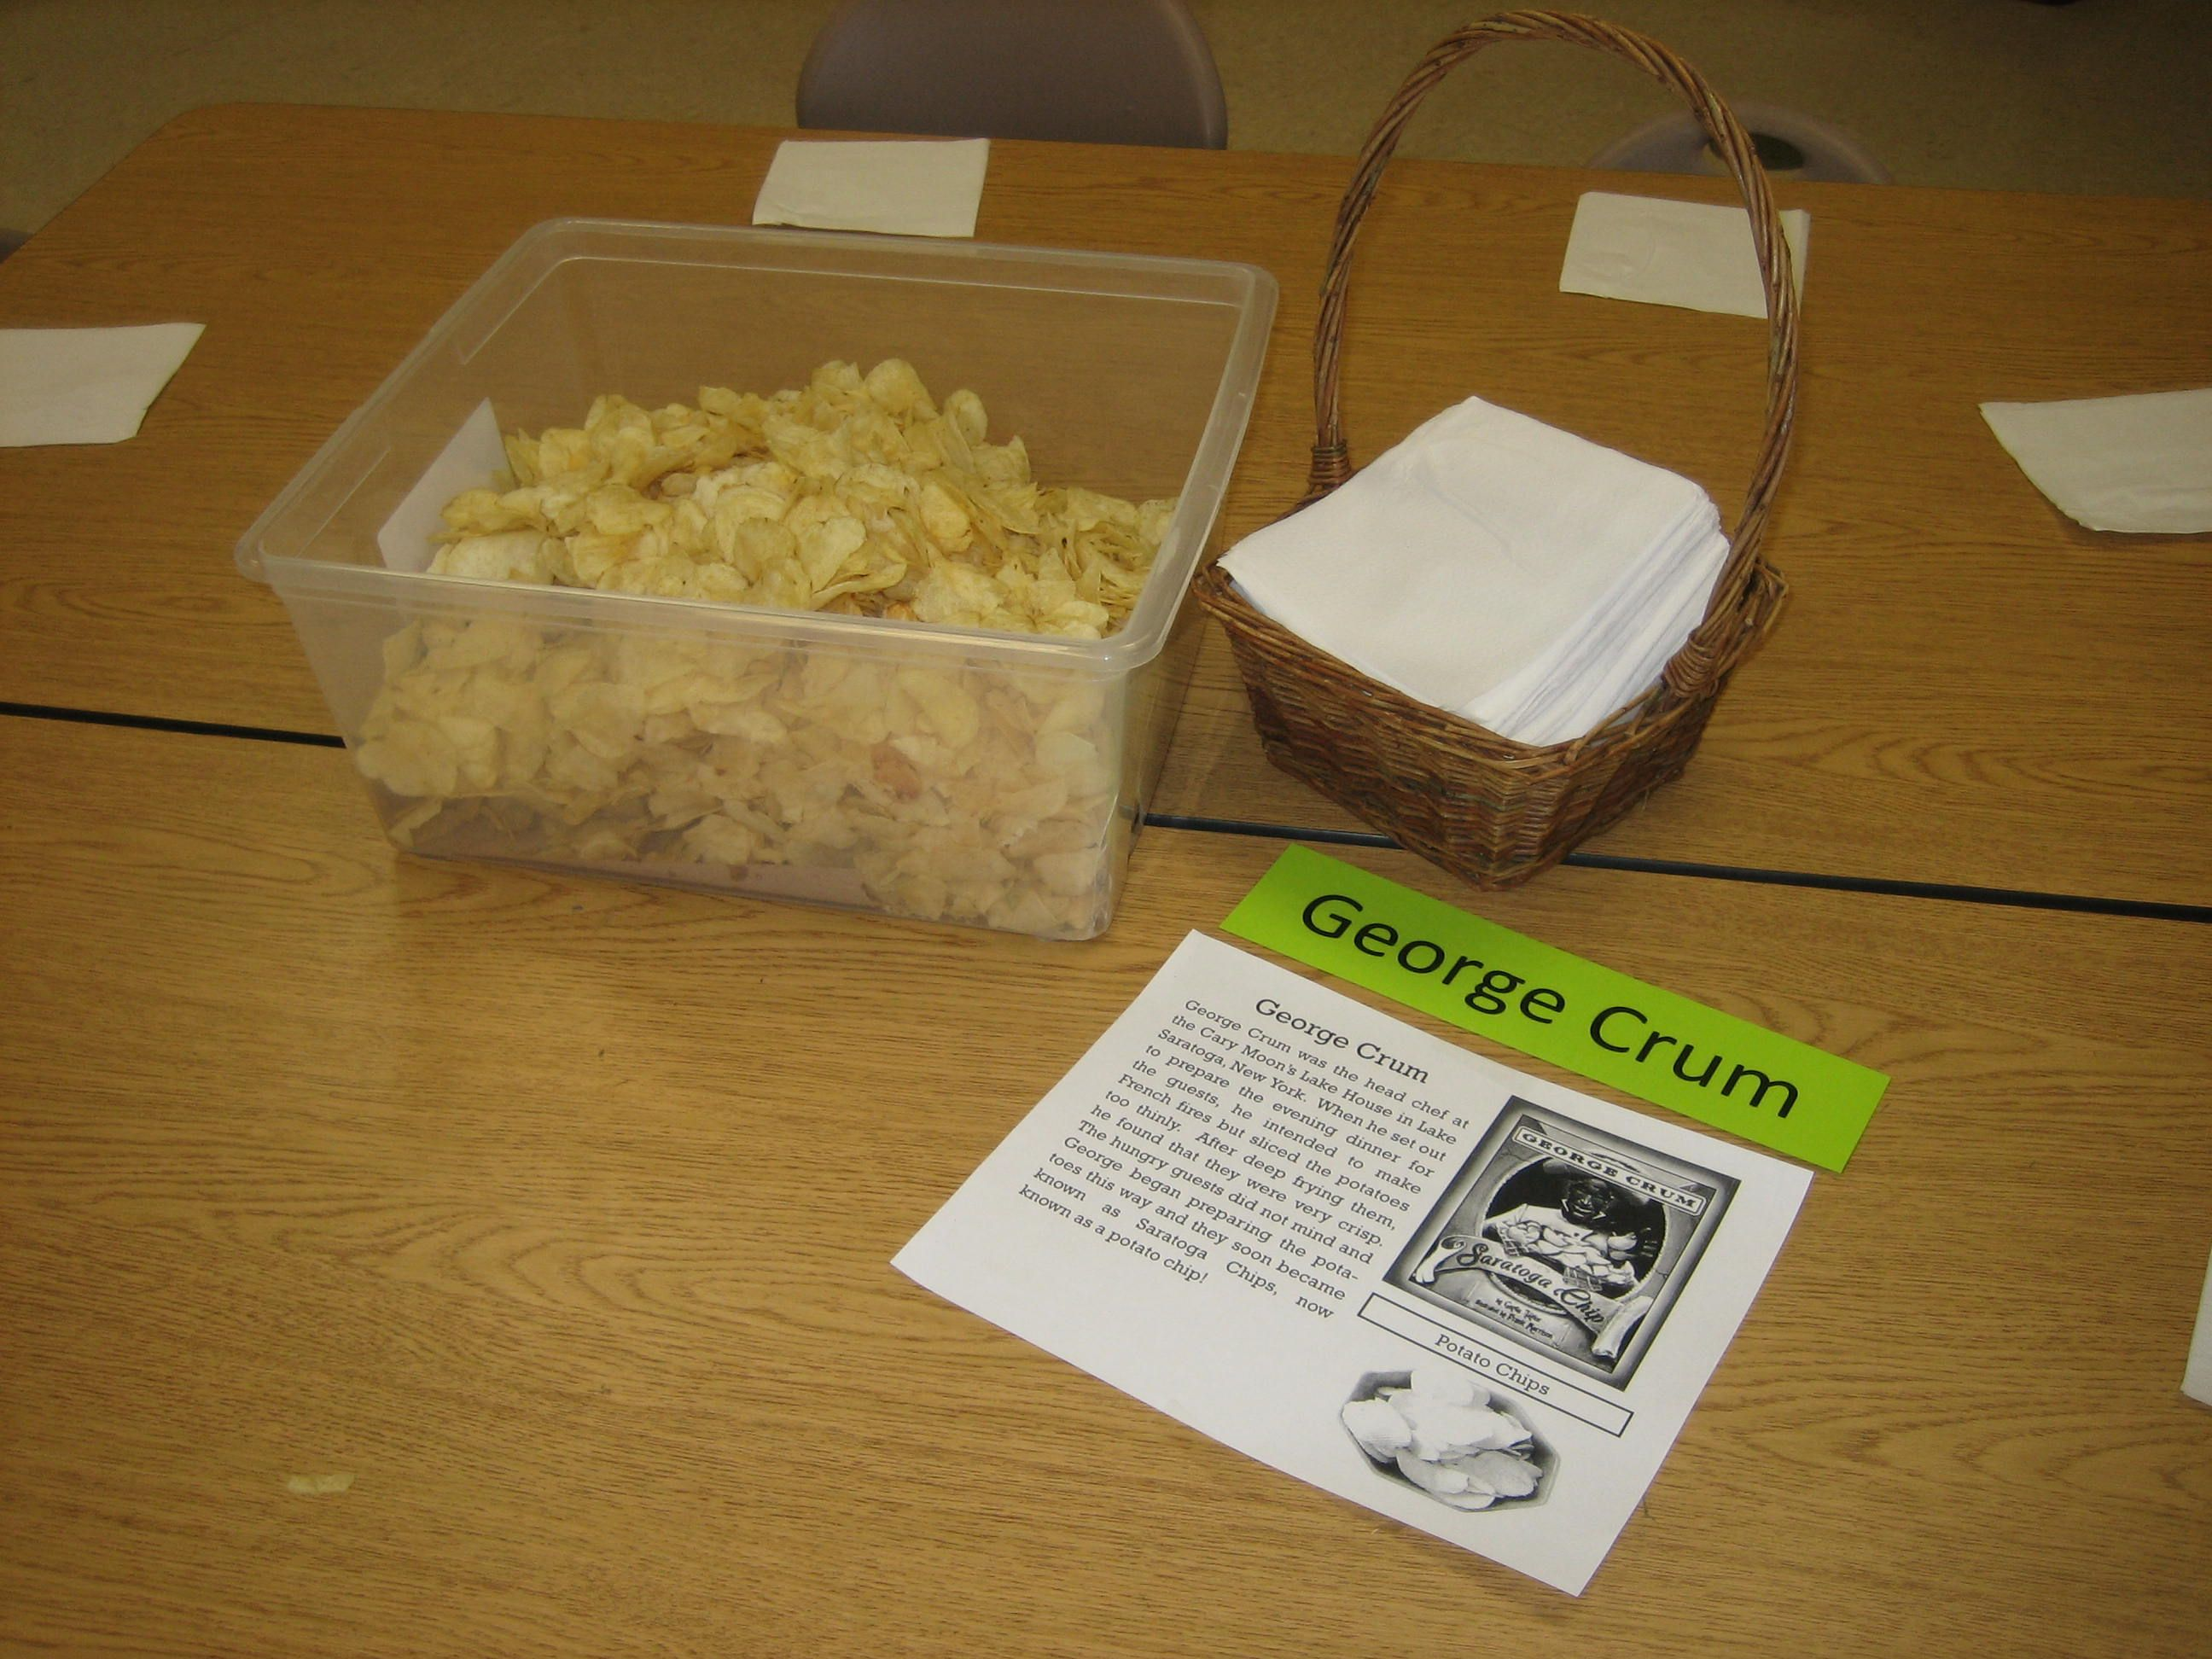 George Crum Was The Early Inventor Of Today S Potato Chip Have A Taste